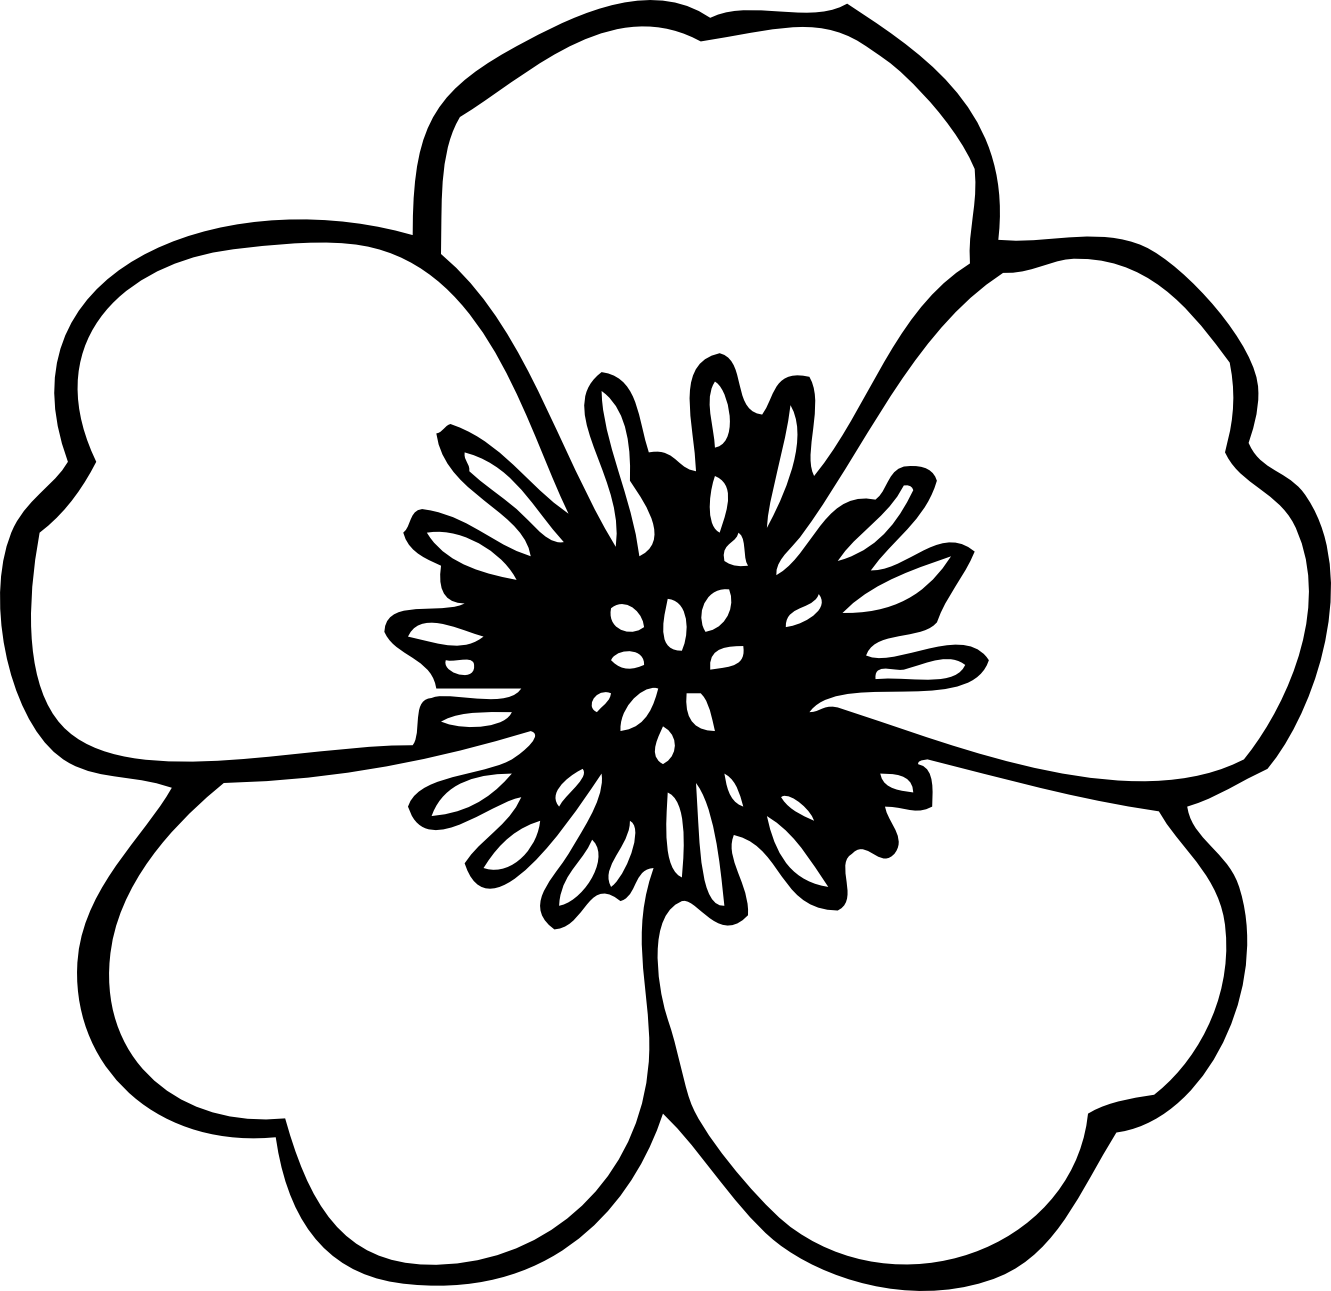 Black and white drawing of flowers at getdrawings free for 1331x1291 poppy flower clipart black and white mightylinksfo Gallery